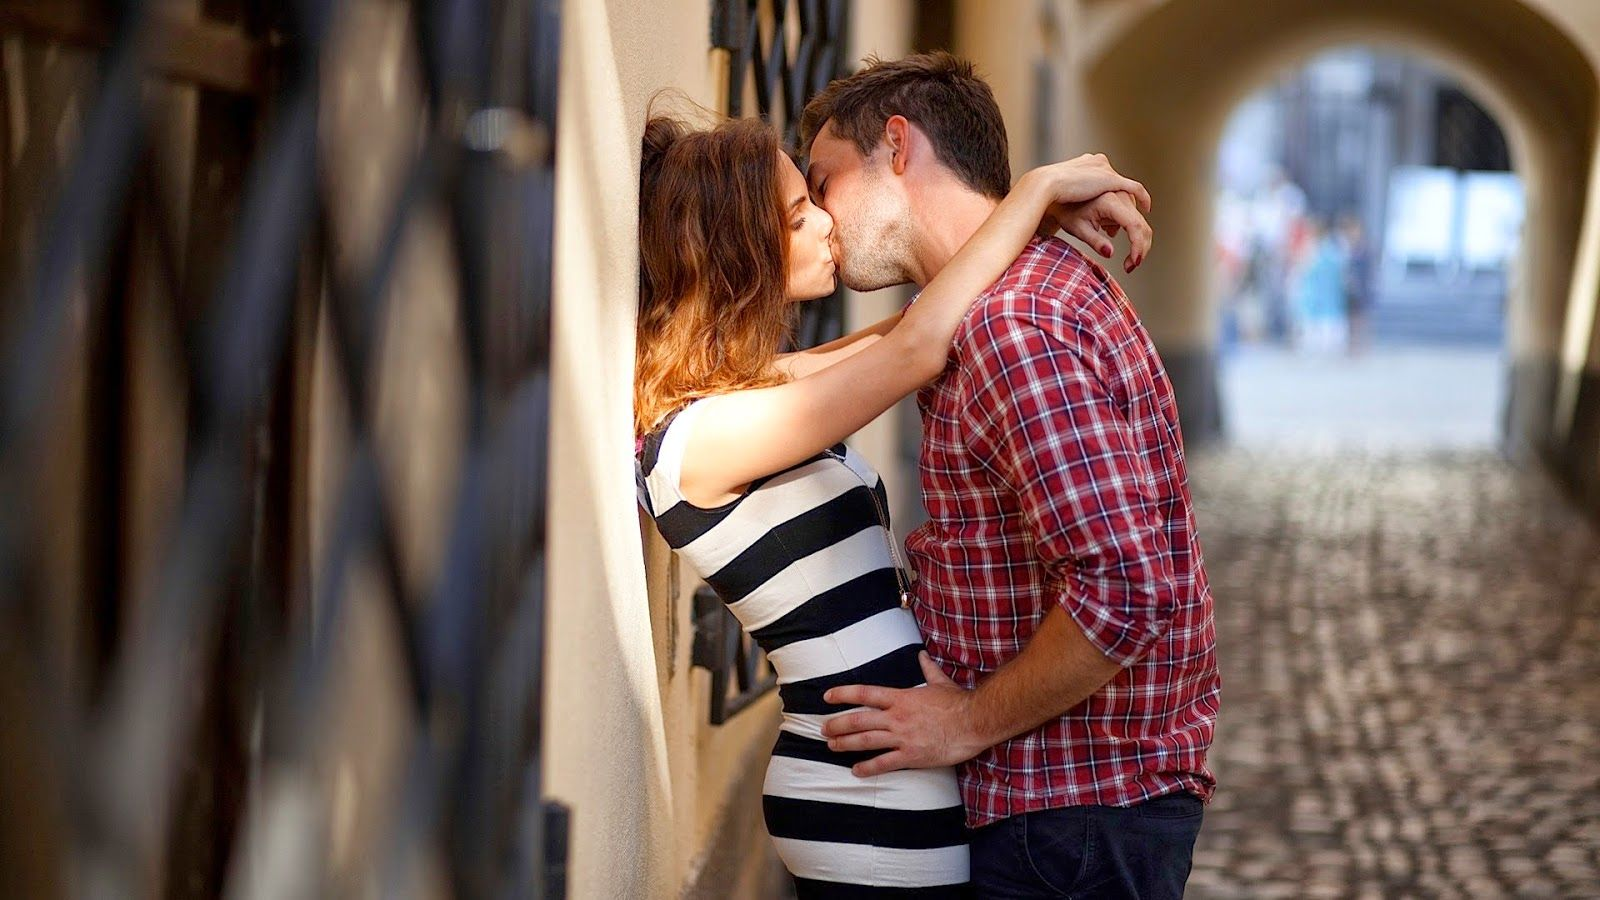 click here to download in hd format >> romantic couple kissing hd